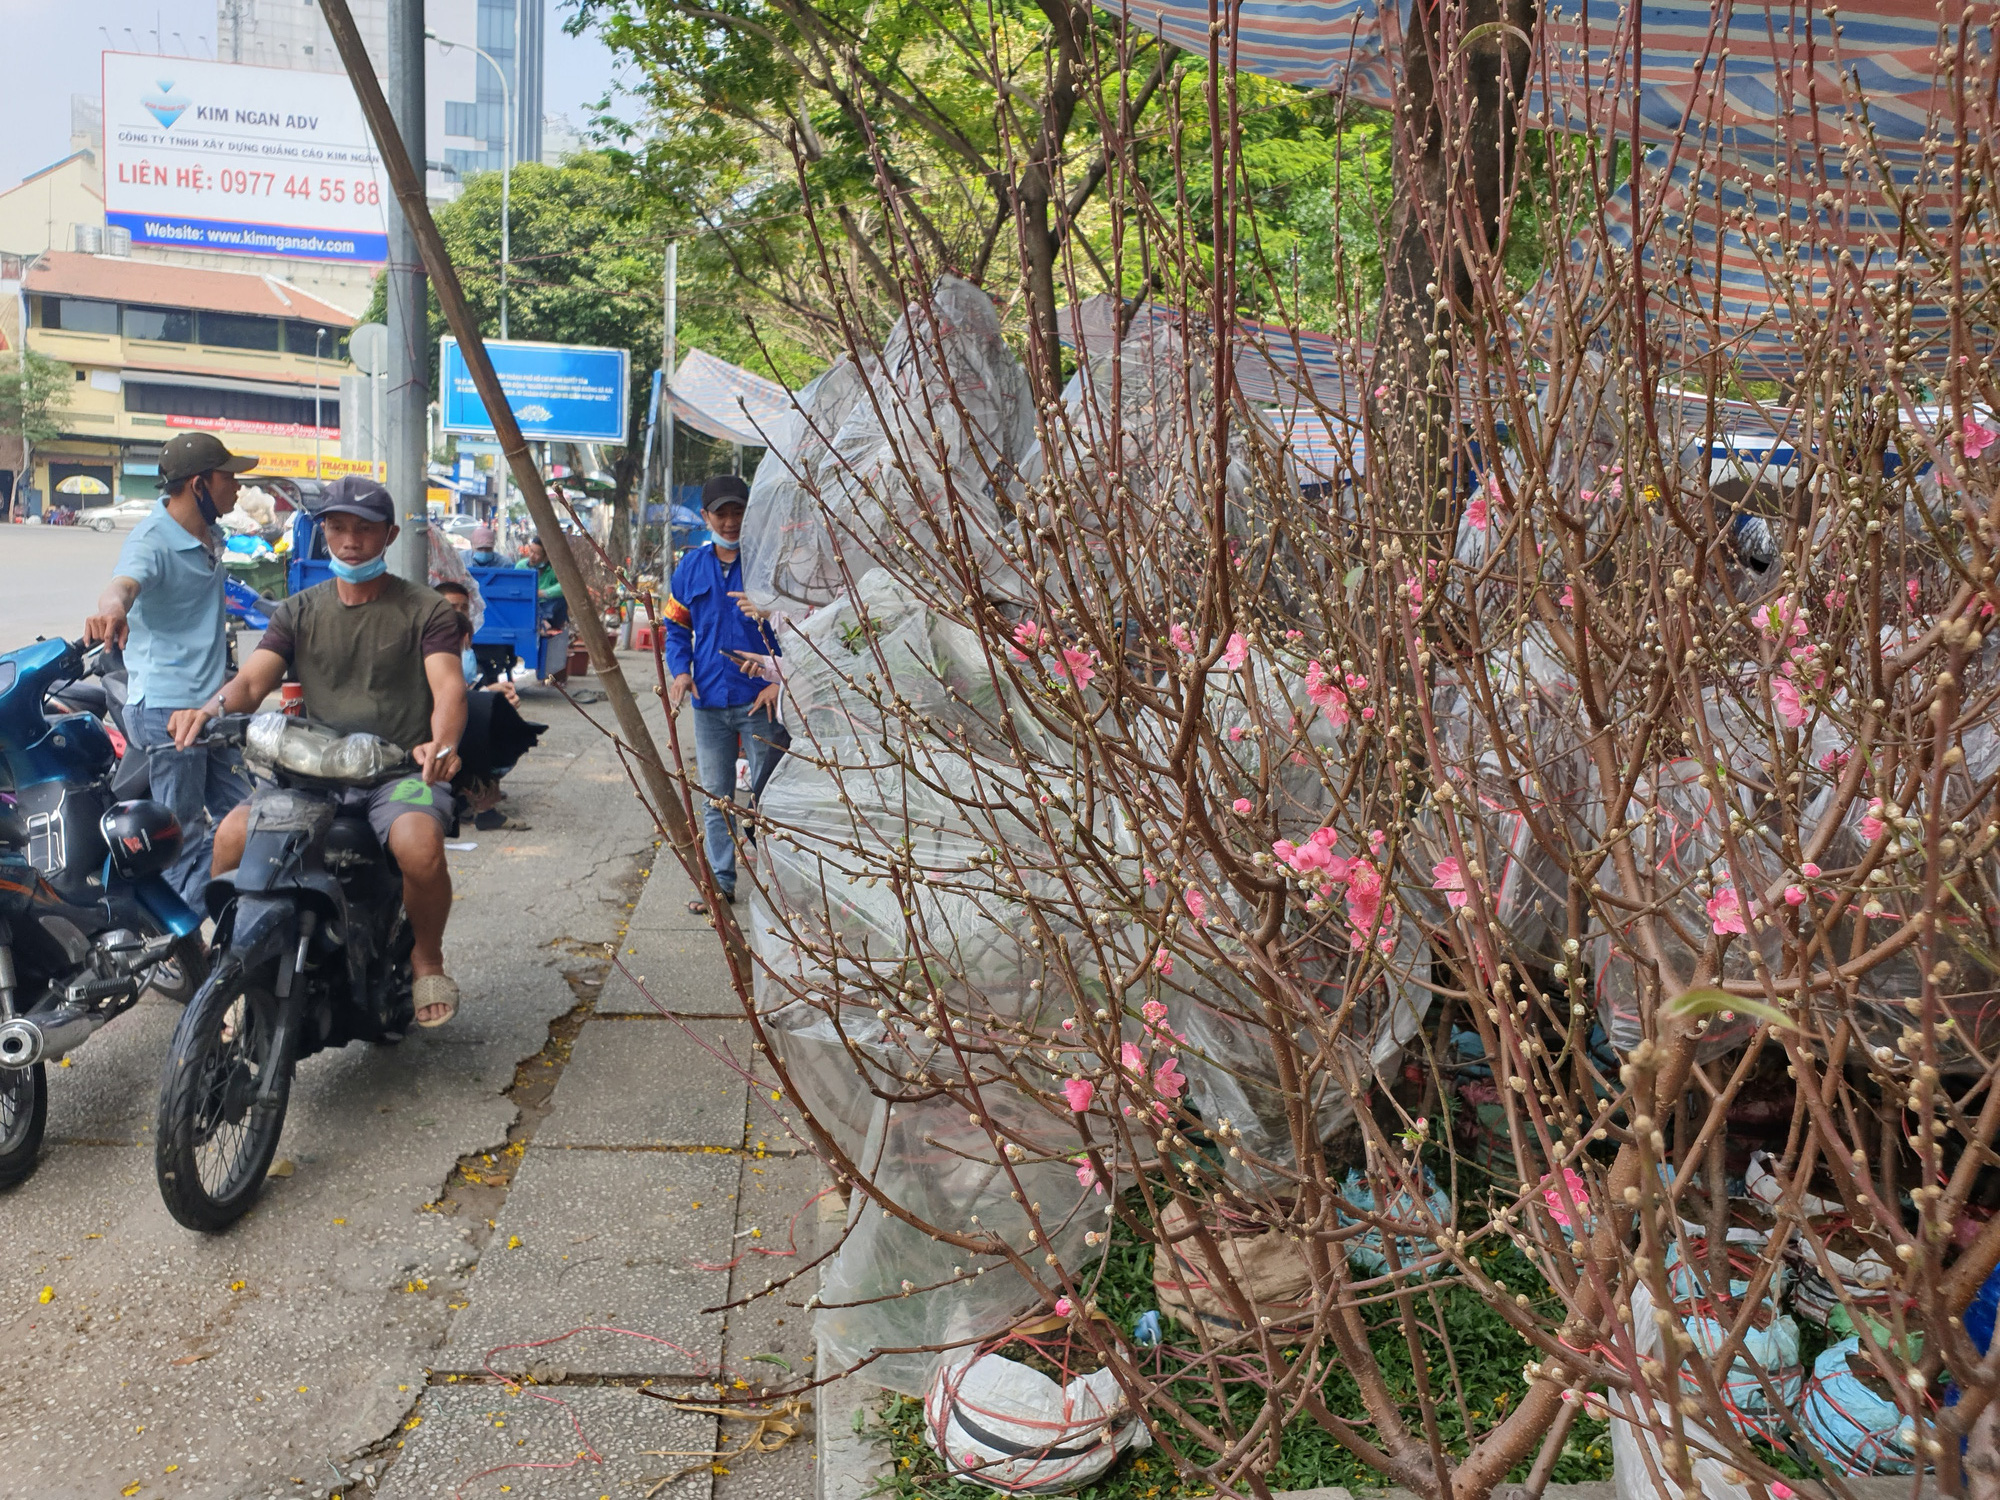 Peach blossom trees are on display for sale at the 23/9 Park in District 1, Ho Chi Minh City, February 2021. Photo: Nguyen Tri / Tuoi Tre